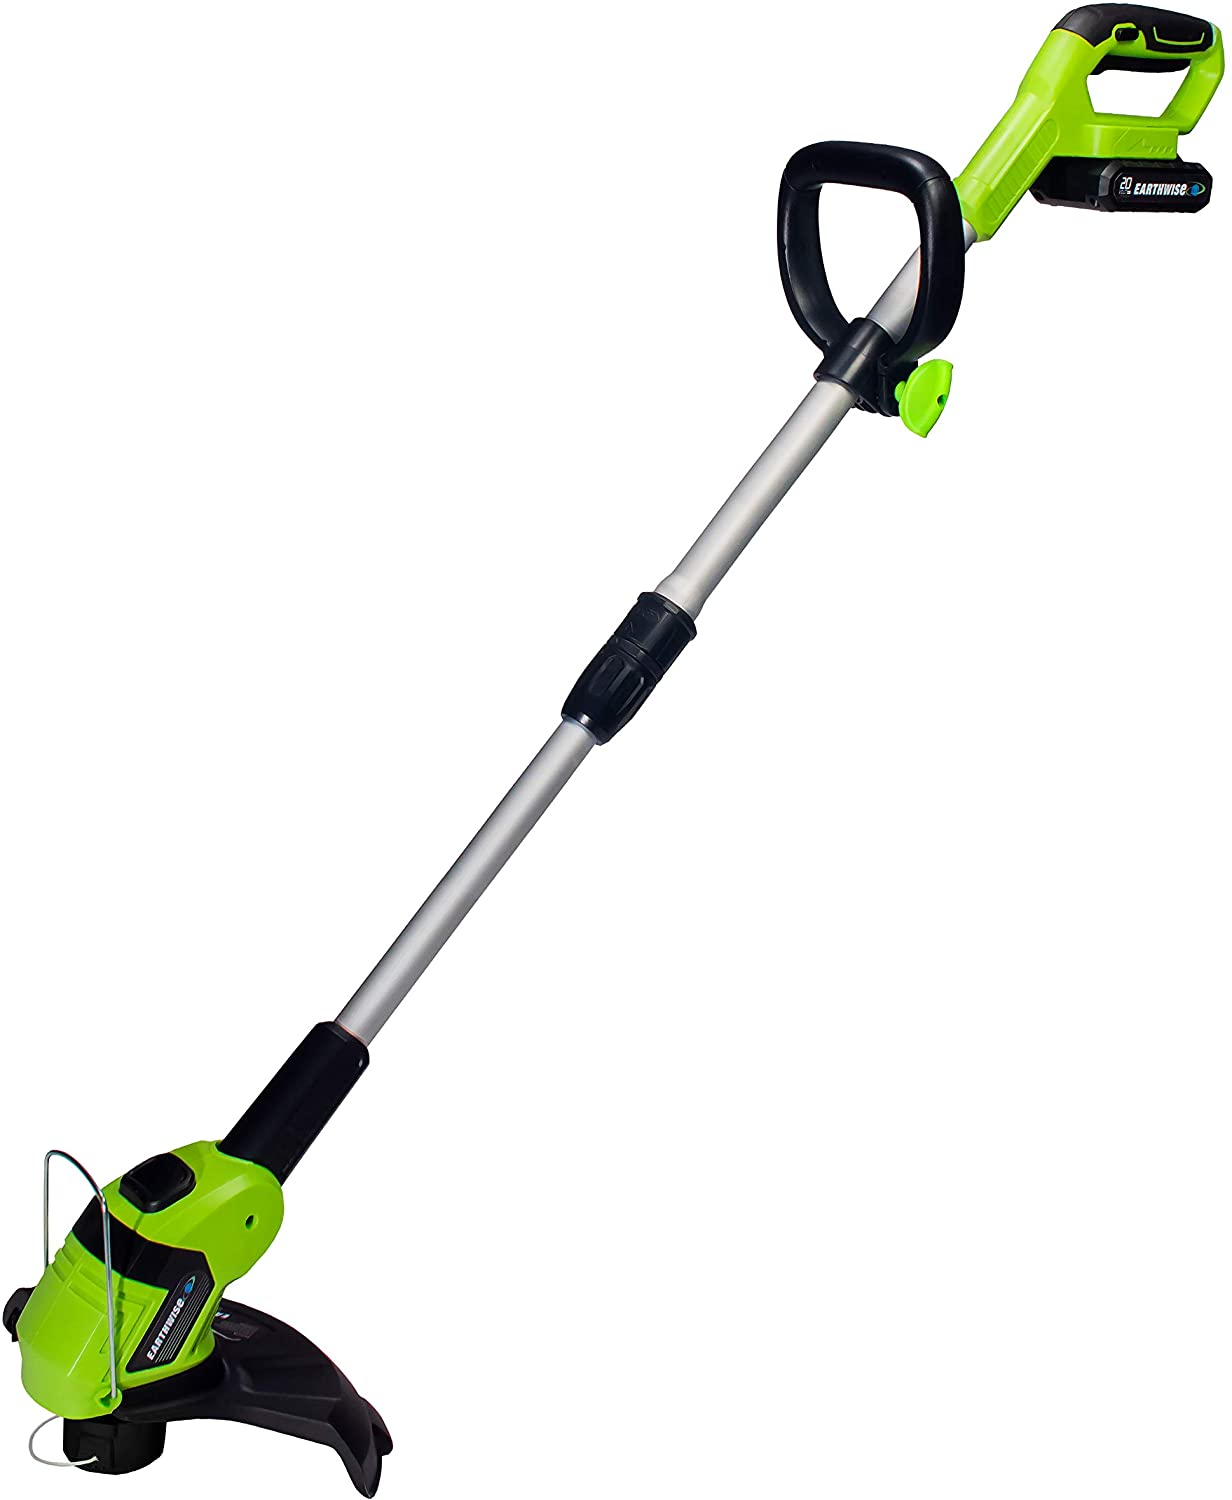 Earthwise LST02010 20V 10-Inch battery Powered Weed Wacker